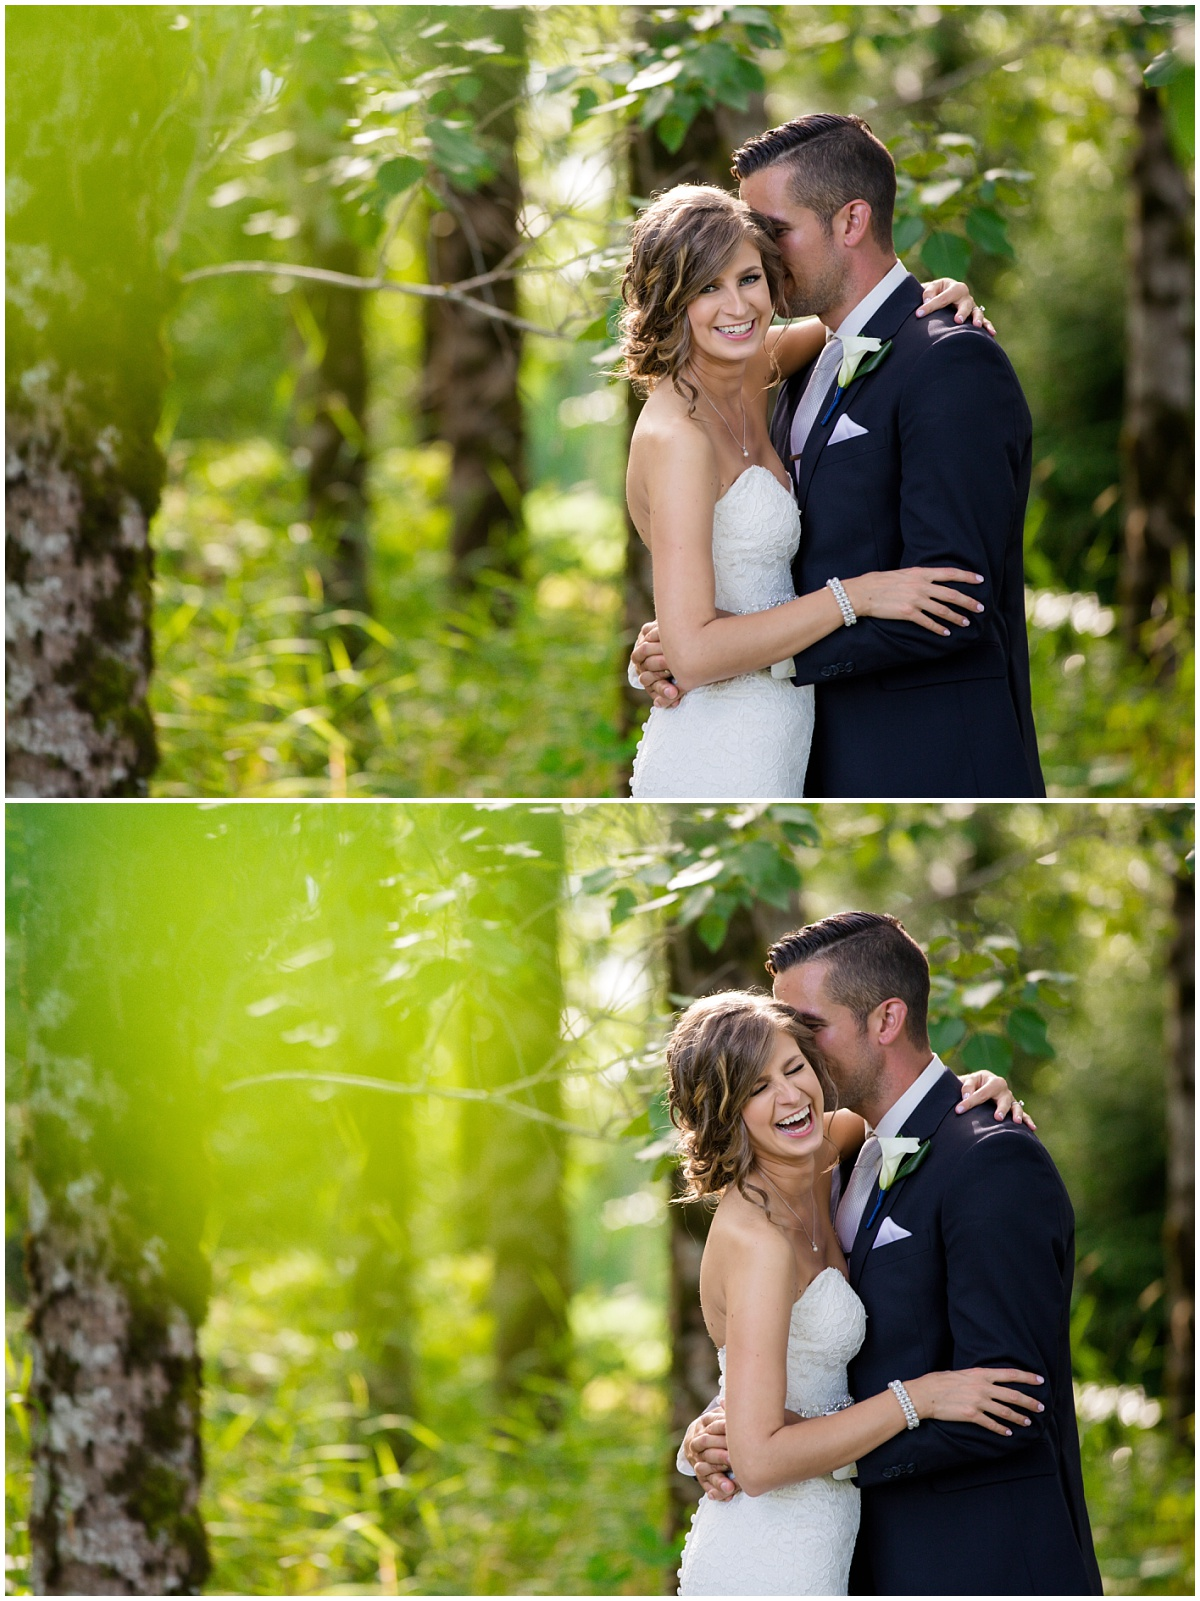 Amazing Day Photography - Redwoods Golf Course Wedding - Amanda and Dustin - Langley Wedding Photographer  (22).jpg